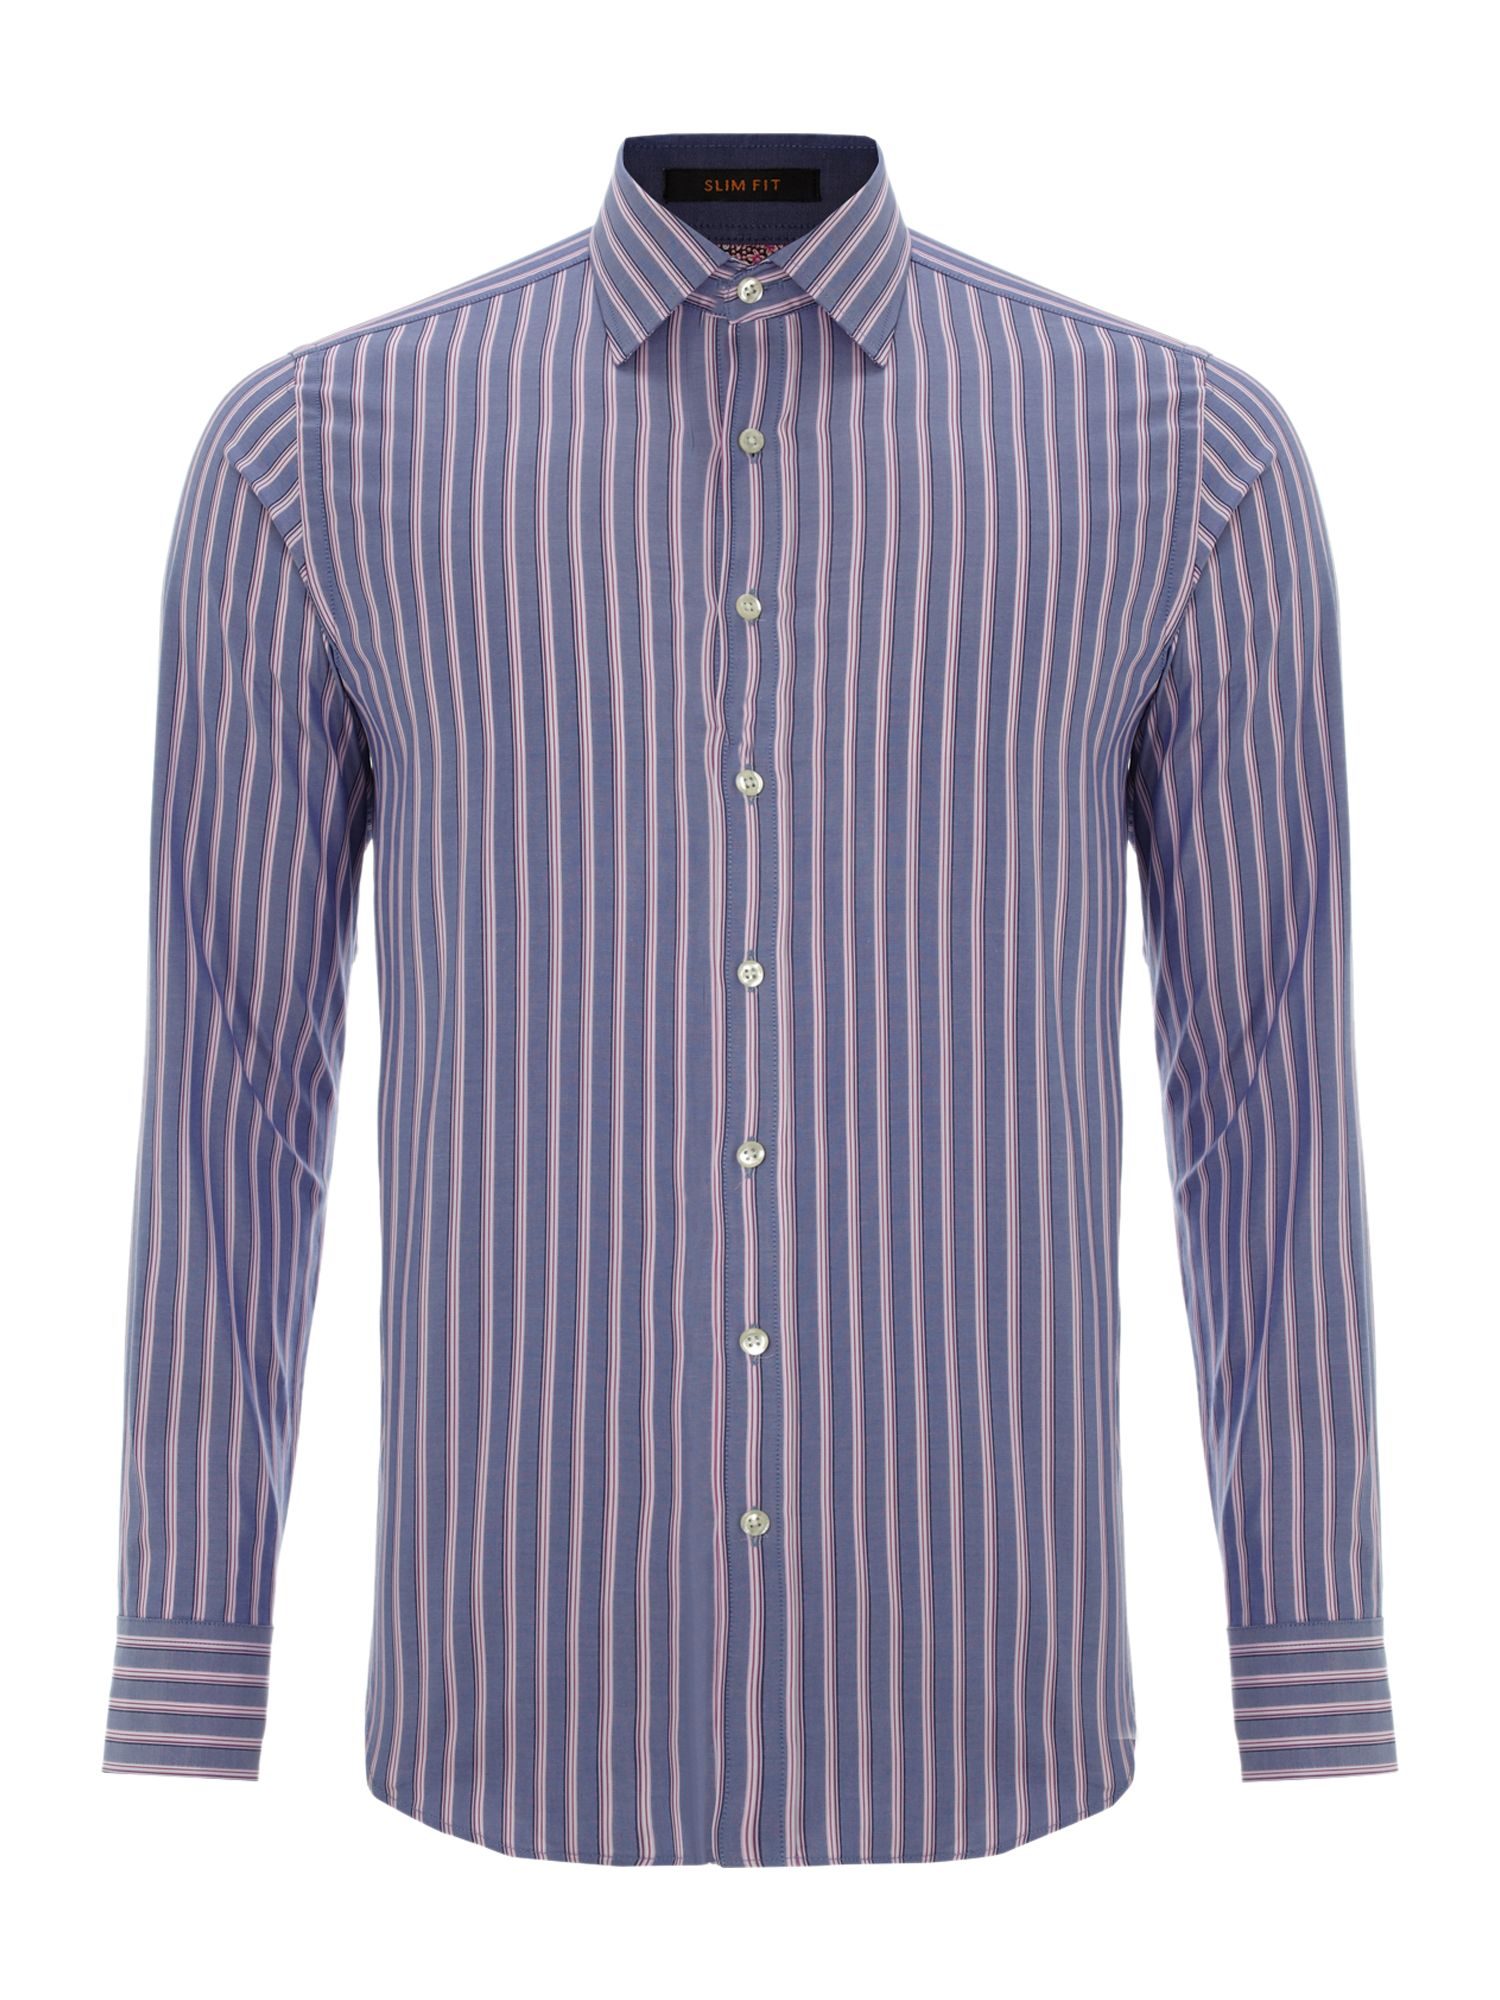 Stripe print detail shirt with 2 button cuff